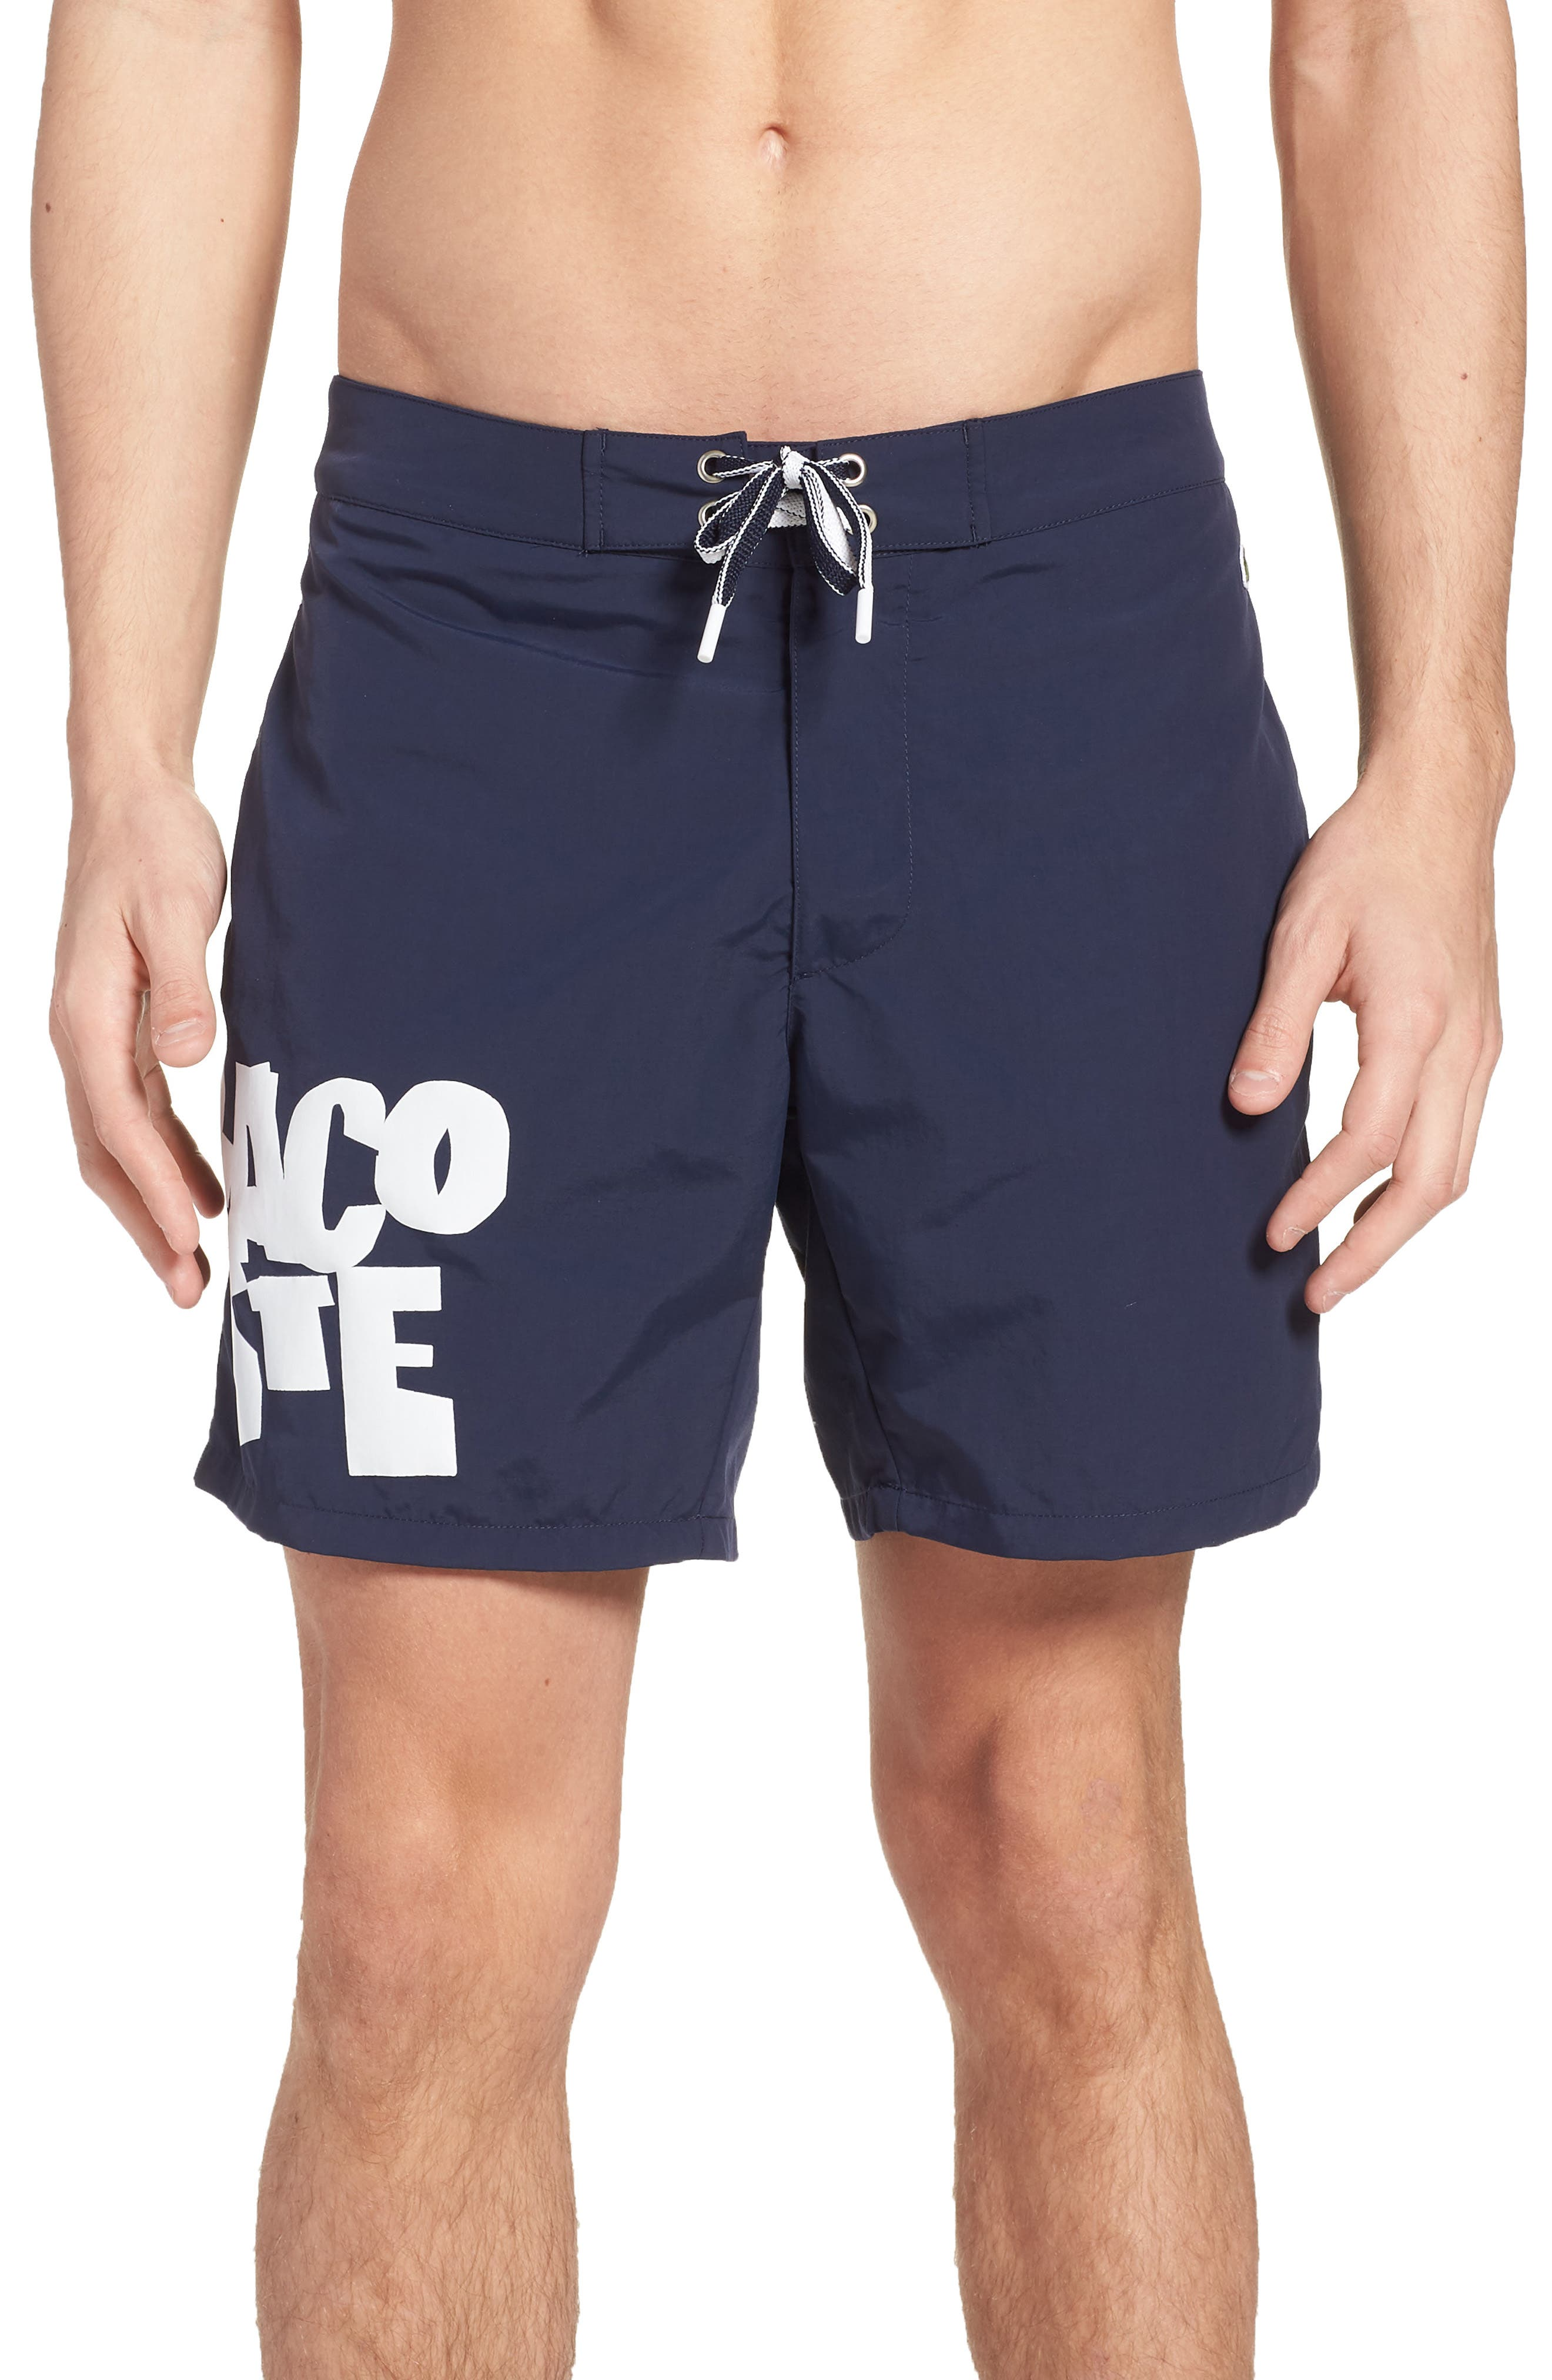 Graphic Swim Trunks,                             Main thumbnail 1, color,                             Navy Blue